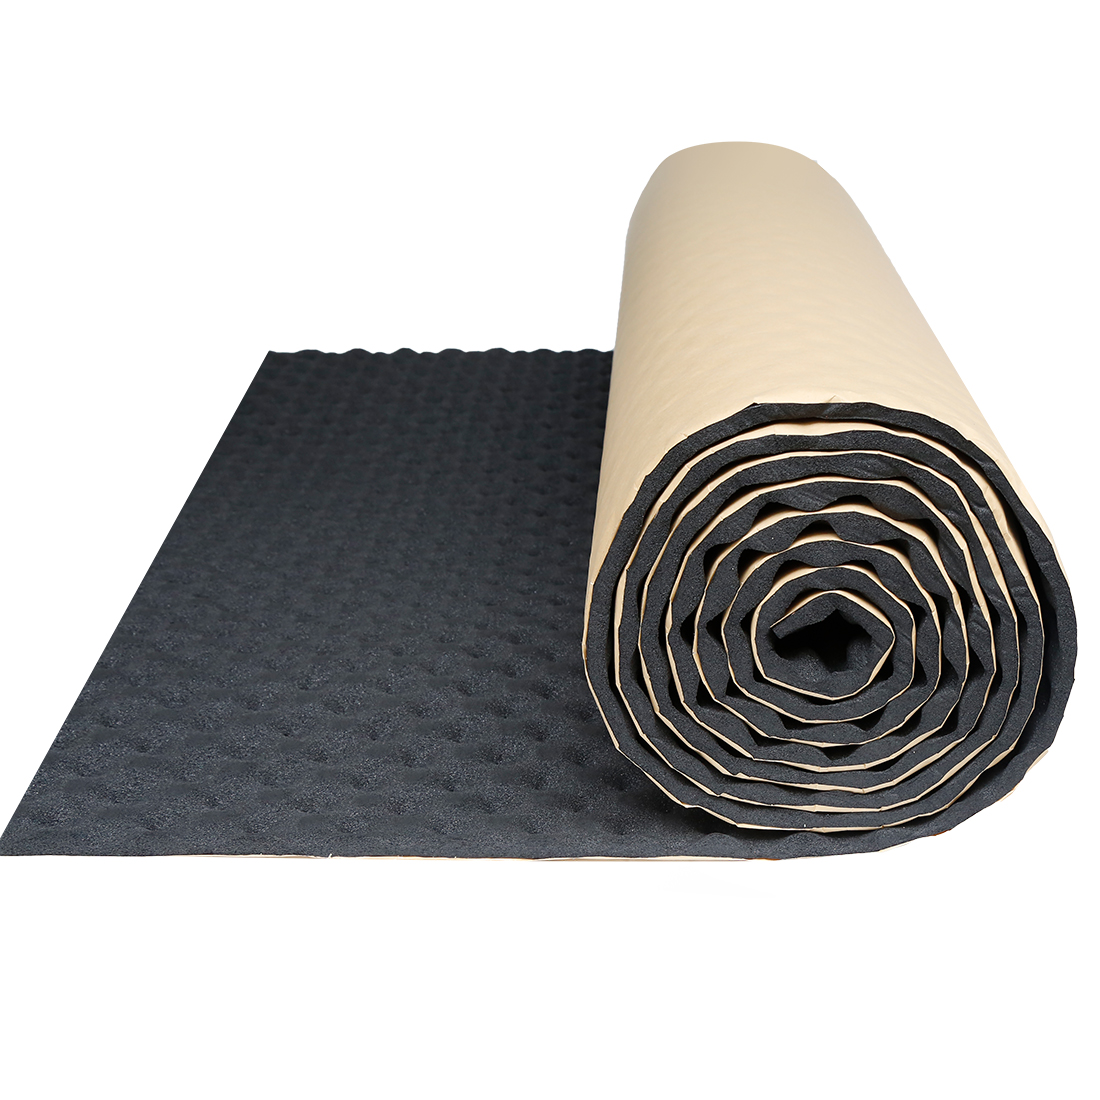 "Wave Studio Sound Acoustic Absorbing Heatproof Foam Deadener 19.7""x197"" 27sqft"